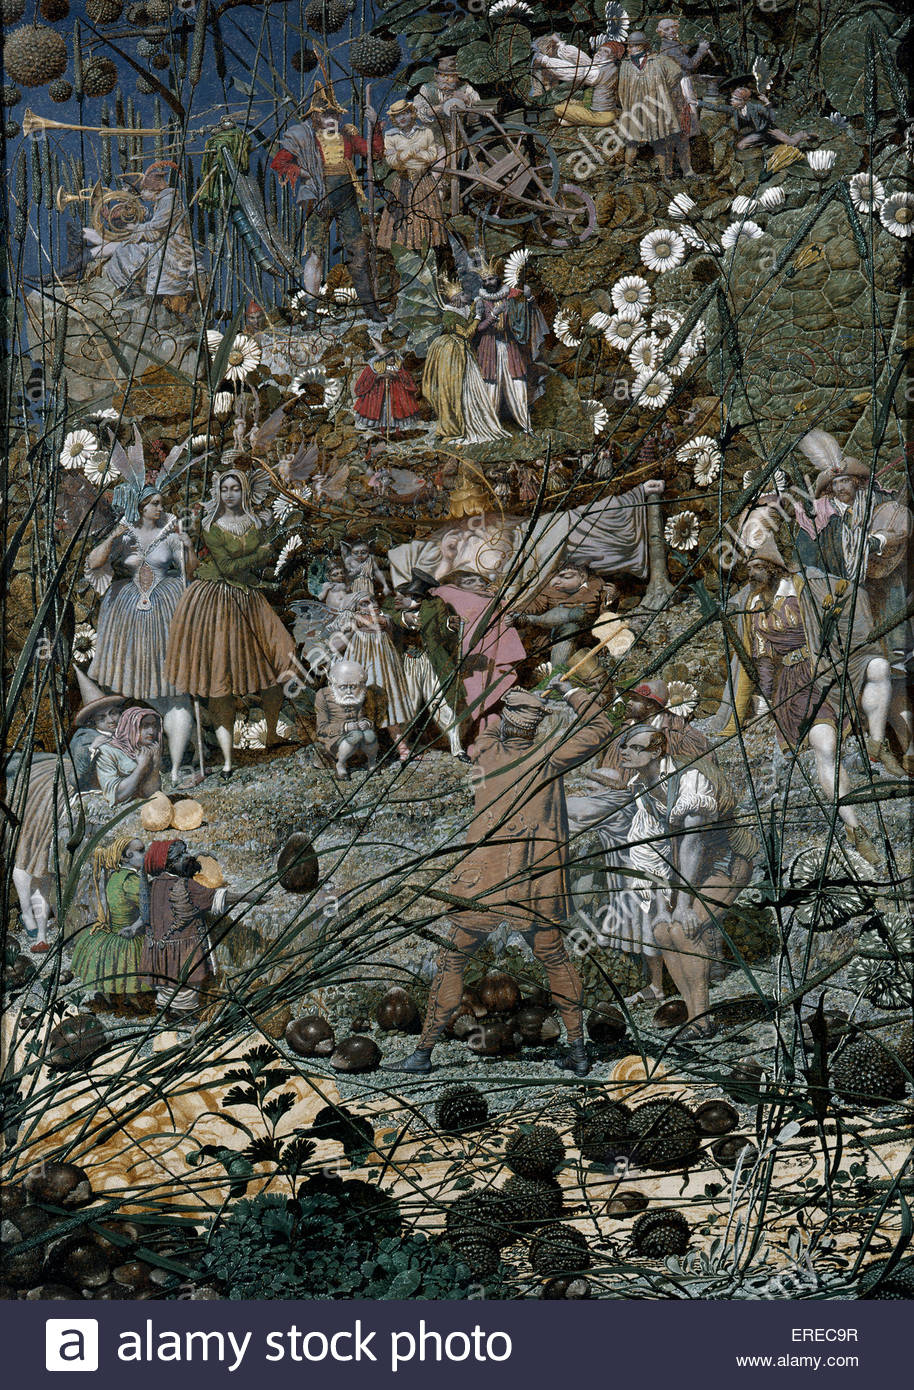 'The Fairy Feller's Masterstroke' painted in 1855 - 1864 by artist Richard Dadd (1817 - 1886) - Stock Image